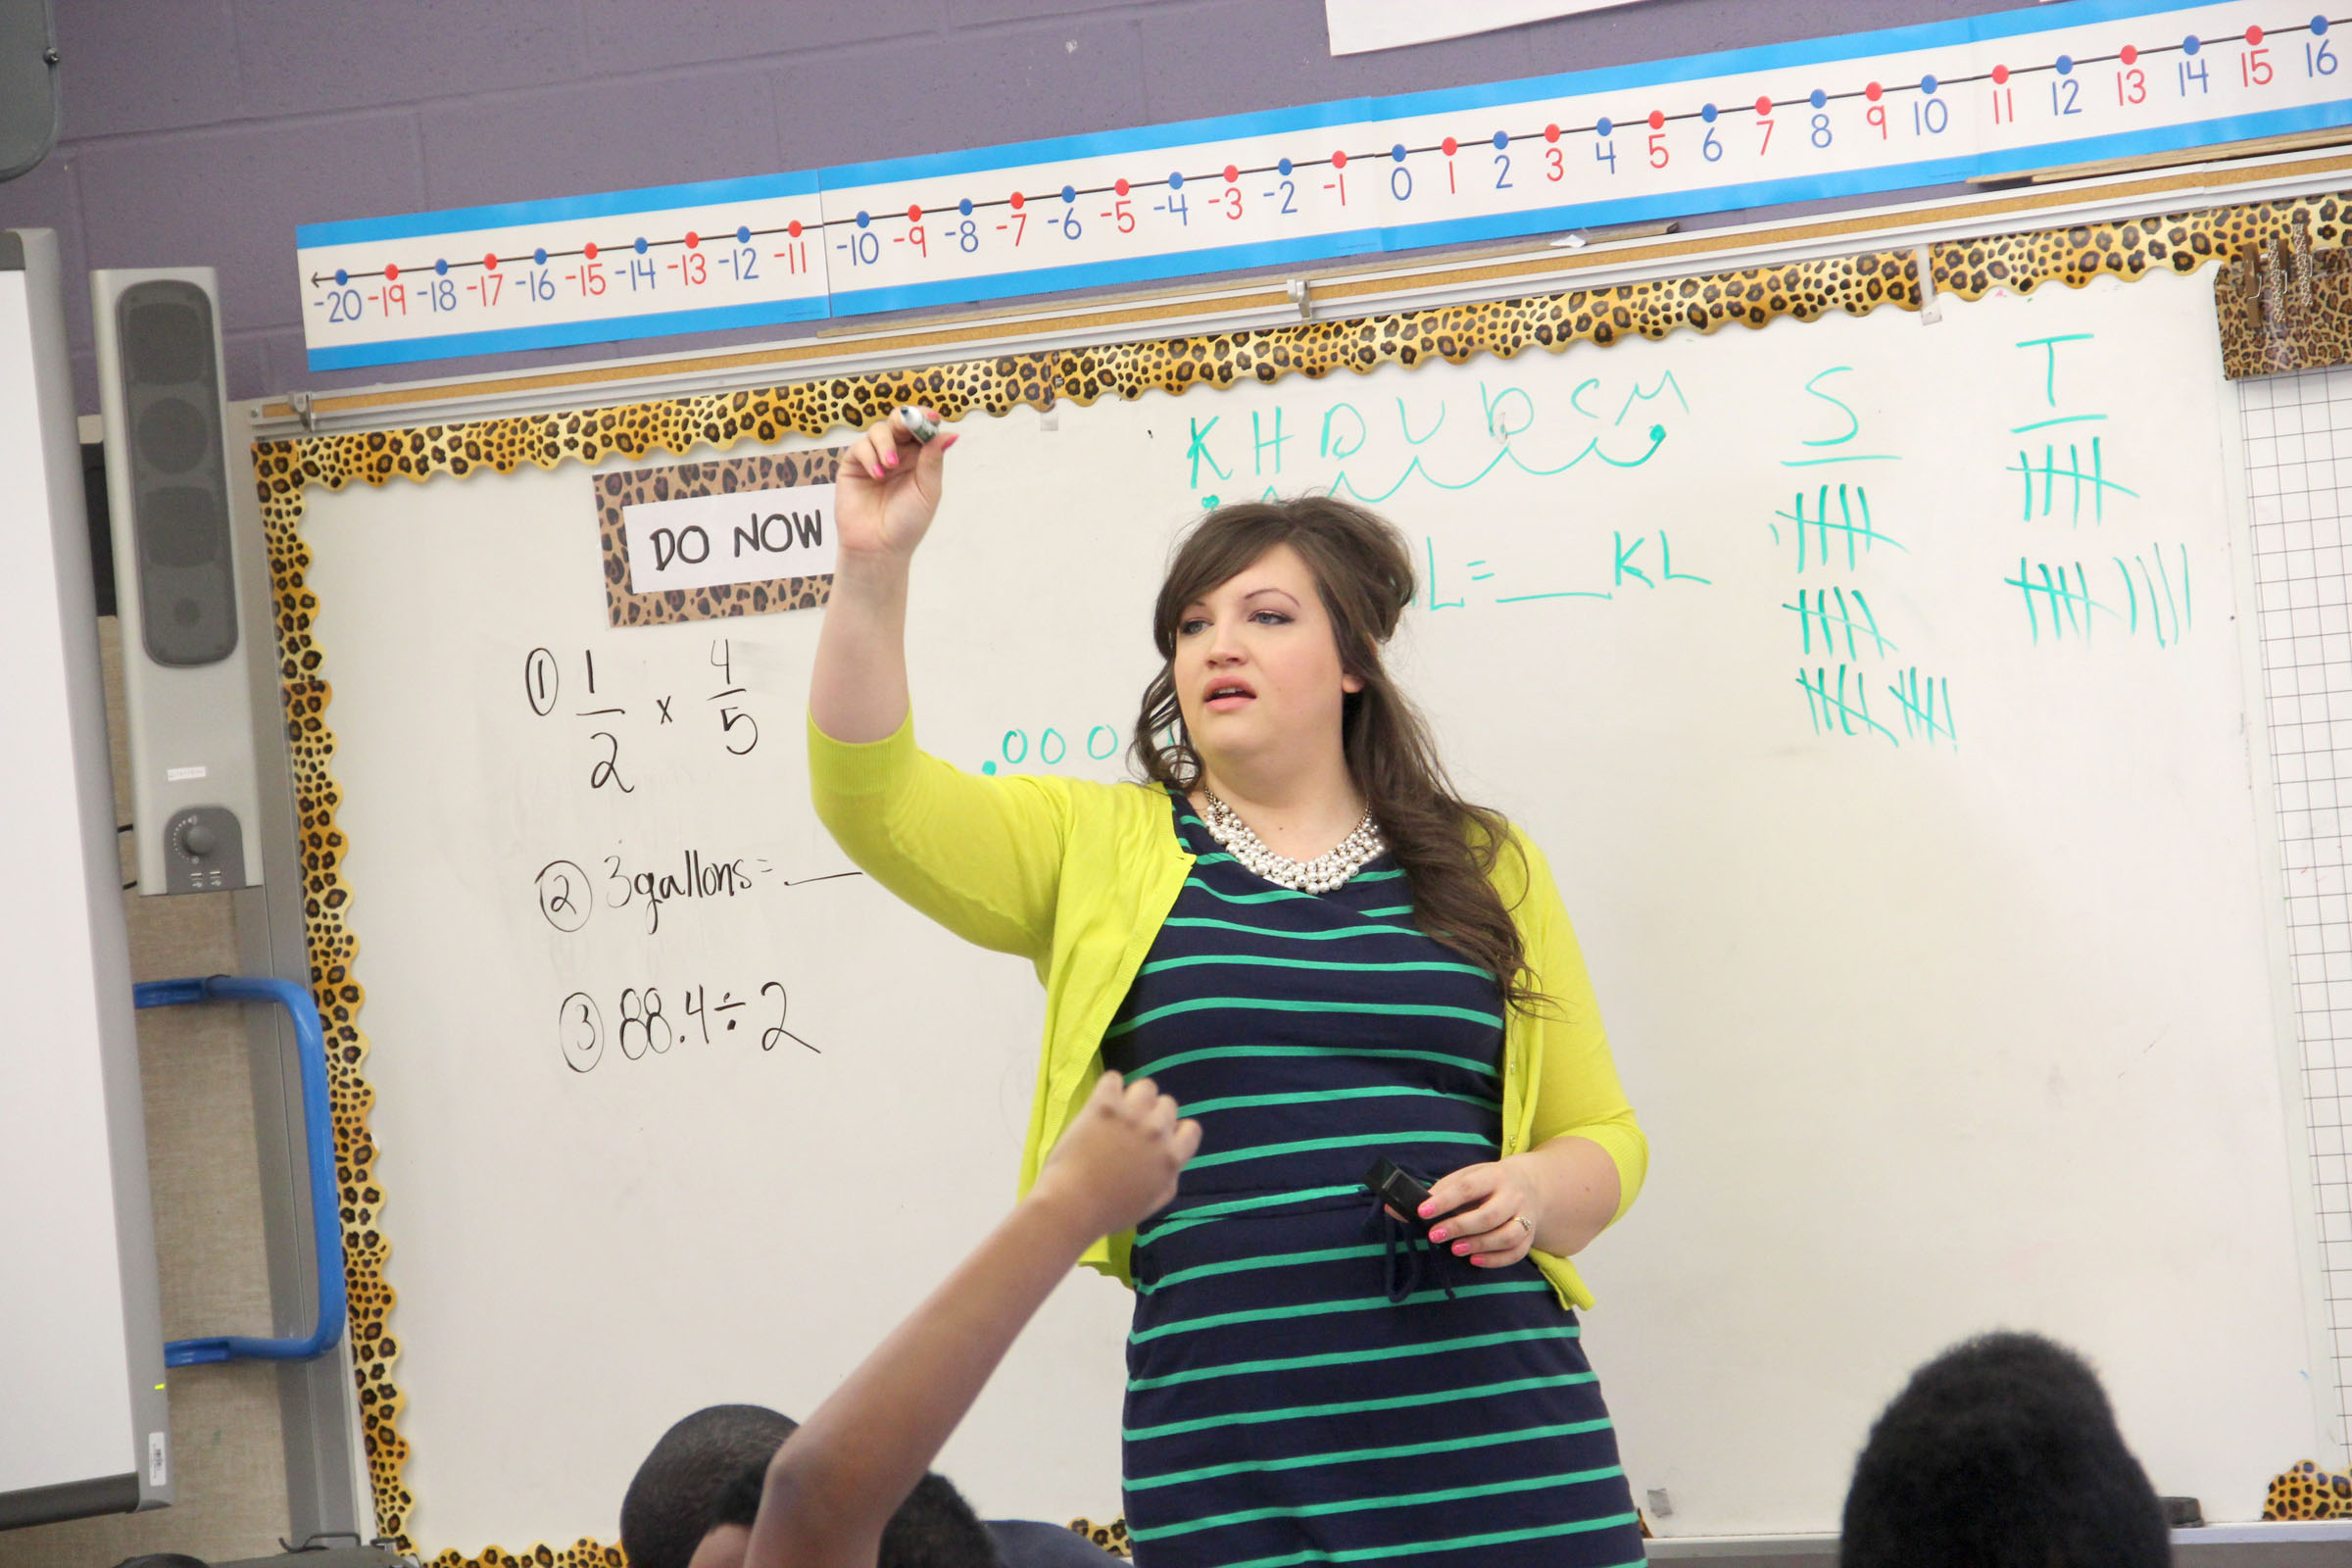 Sixth grade math teacher Melissa Schut prepares students for a classroom assignment.